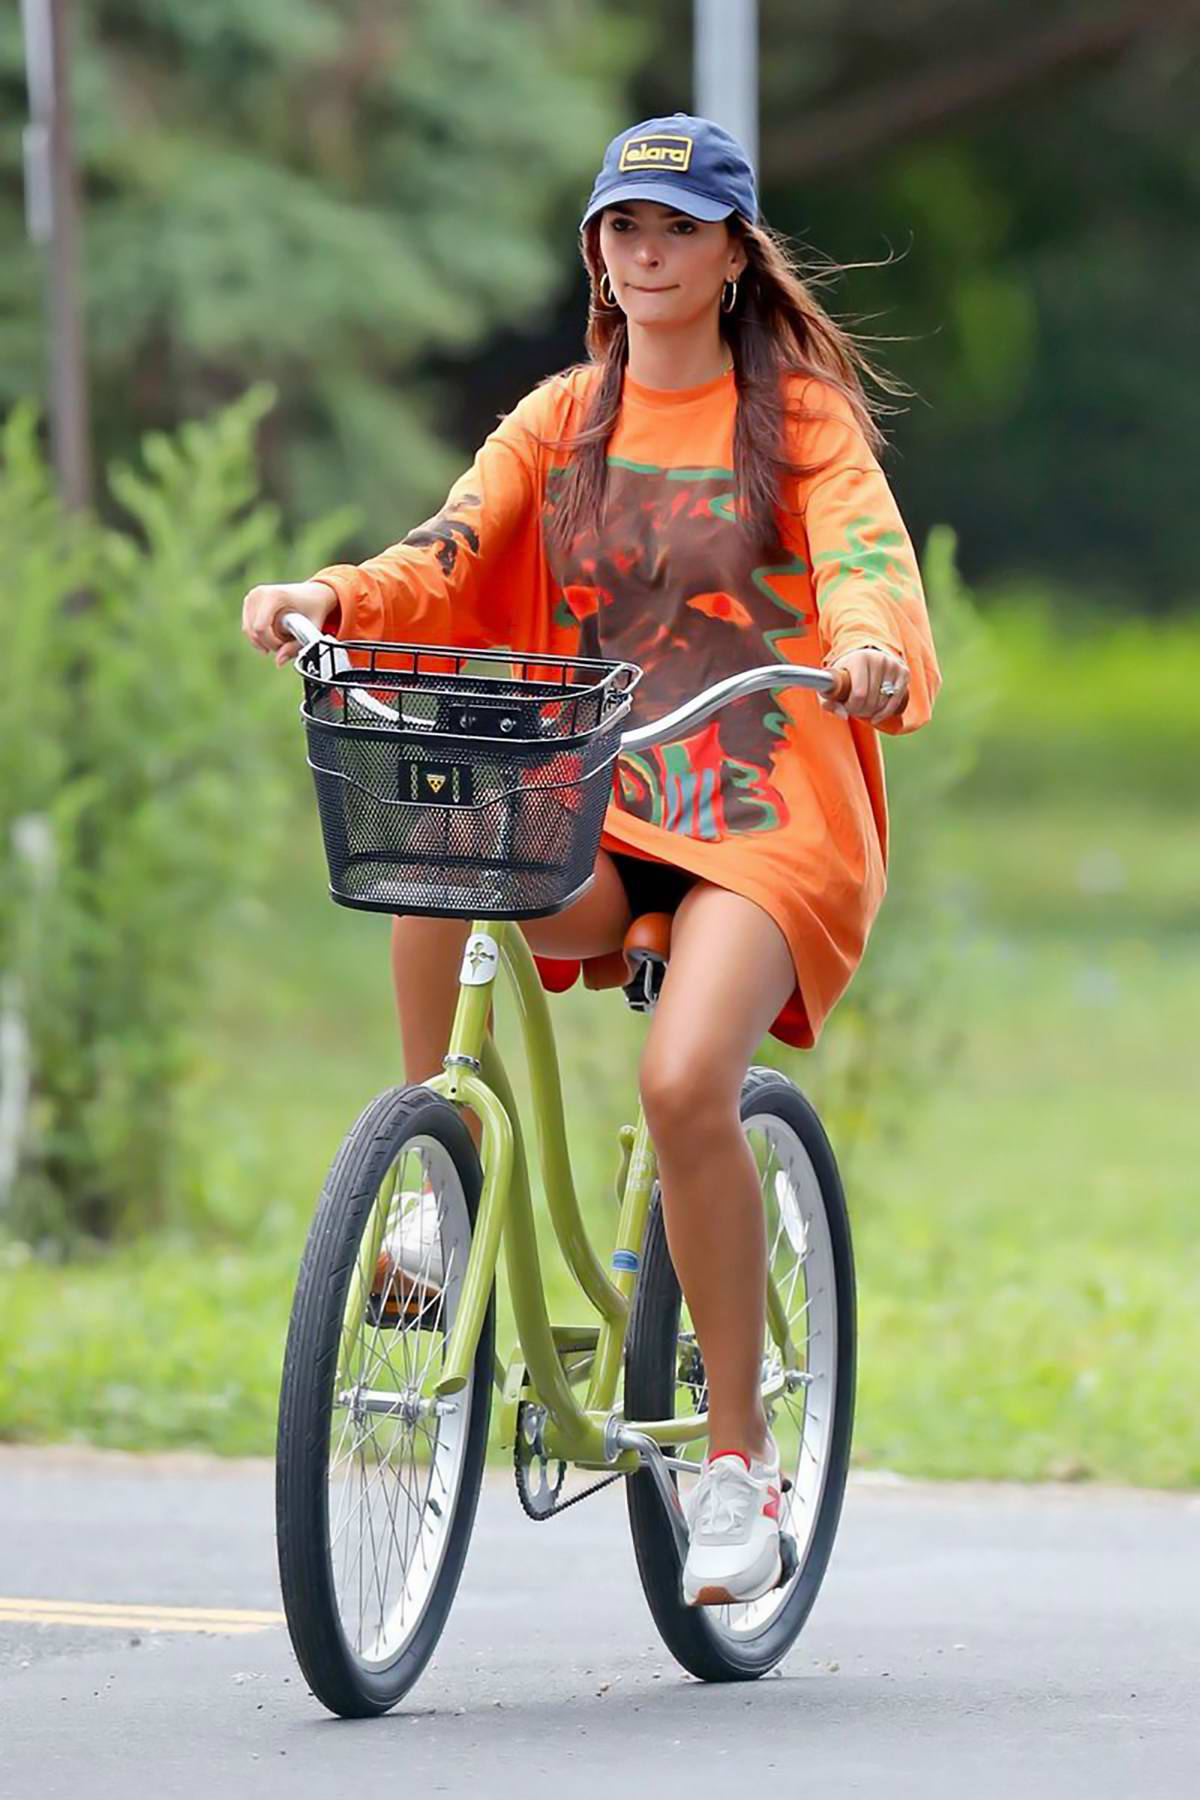 Emily Ratajkowski dons an oversized orange sweatshirt while out for a bike ride in The Hamptons, New York